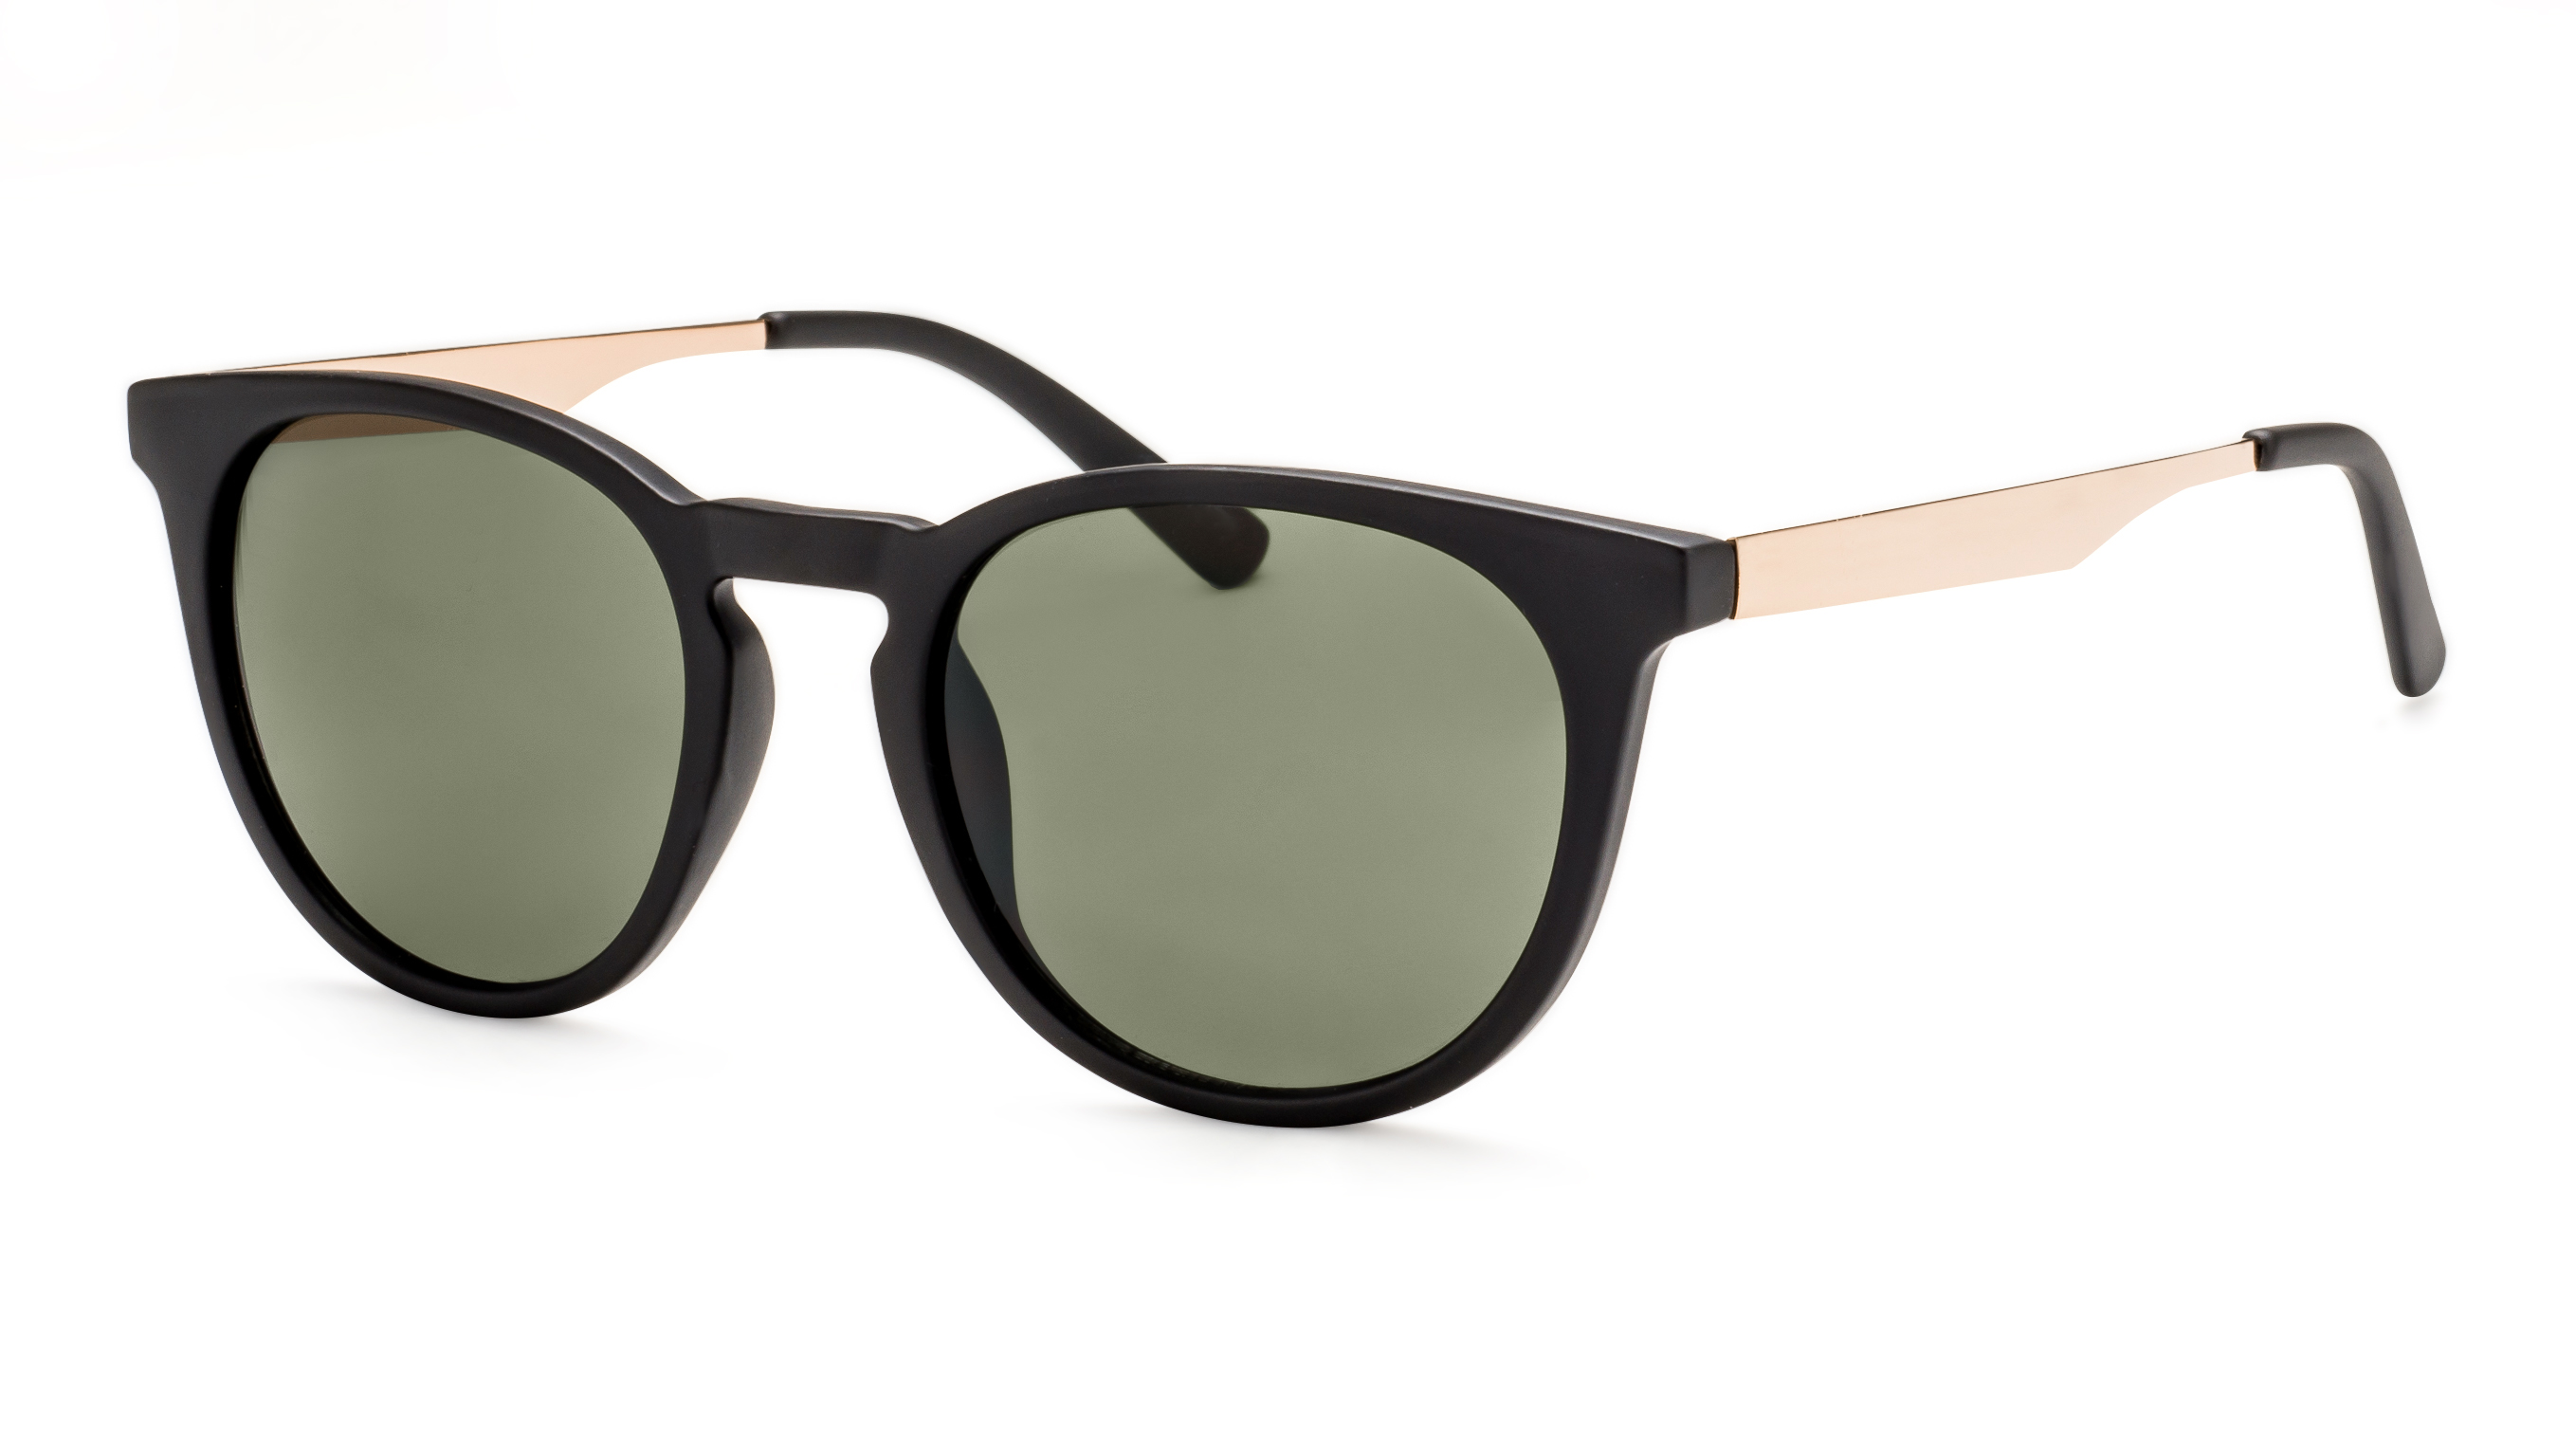 Main view sunglasses 3001079